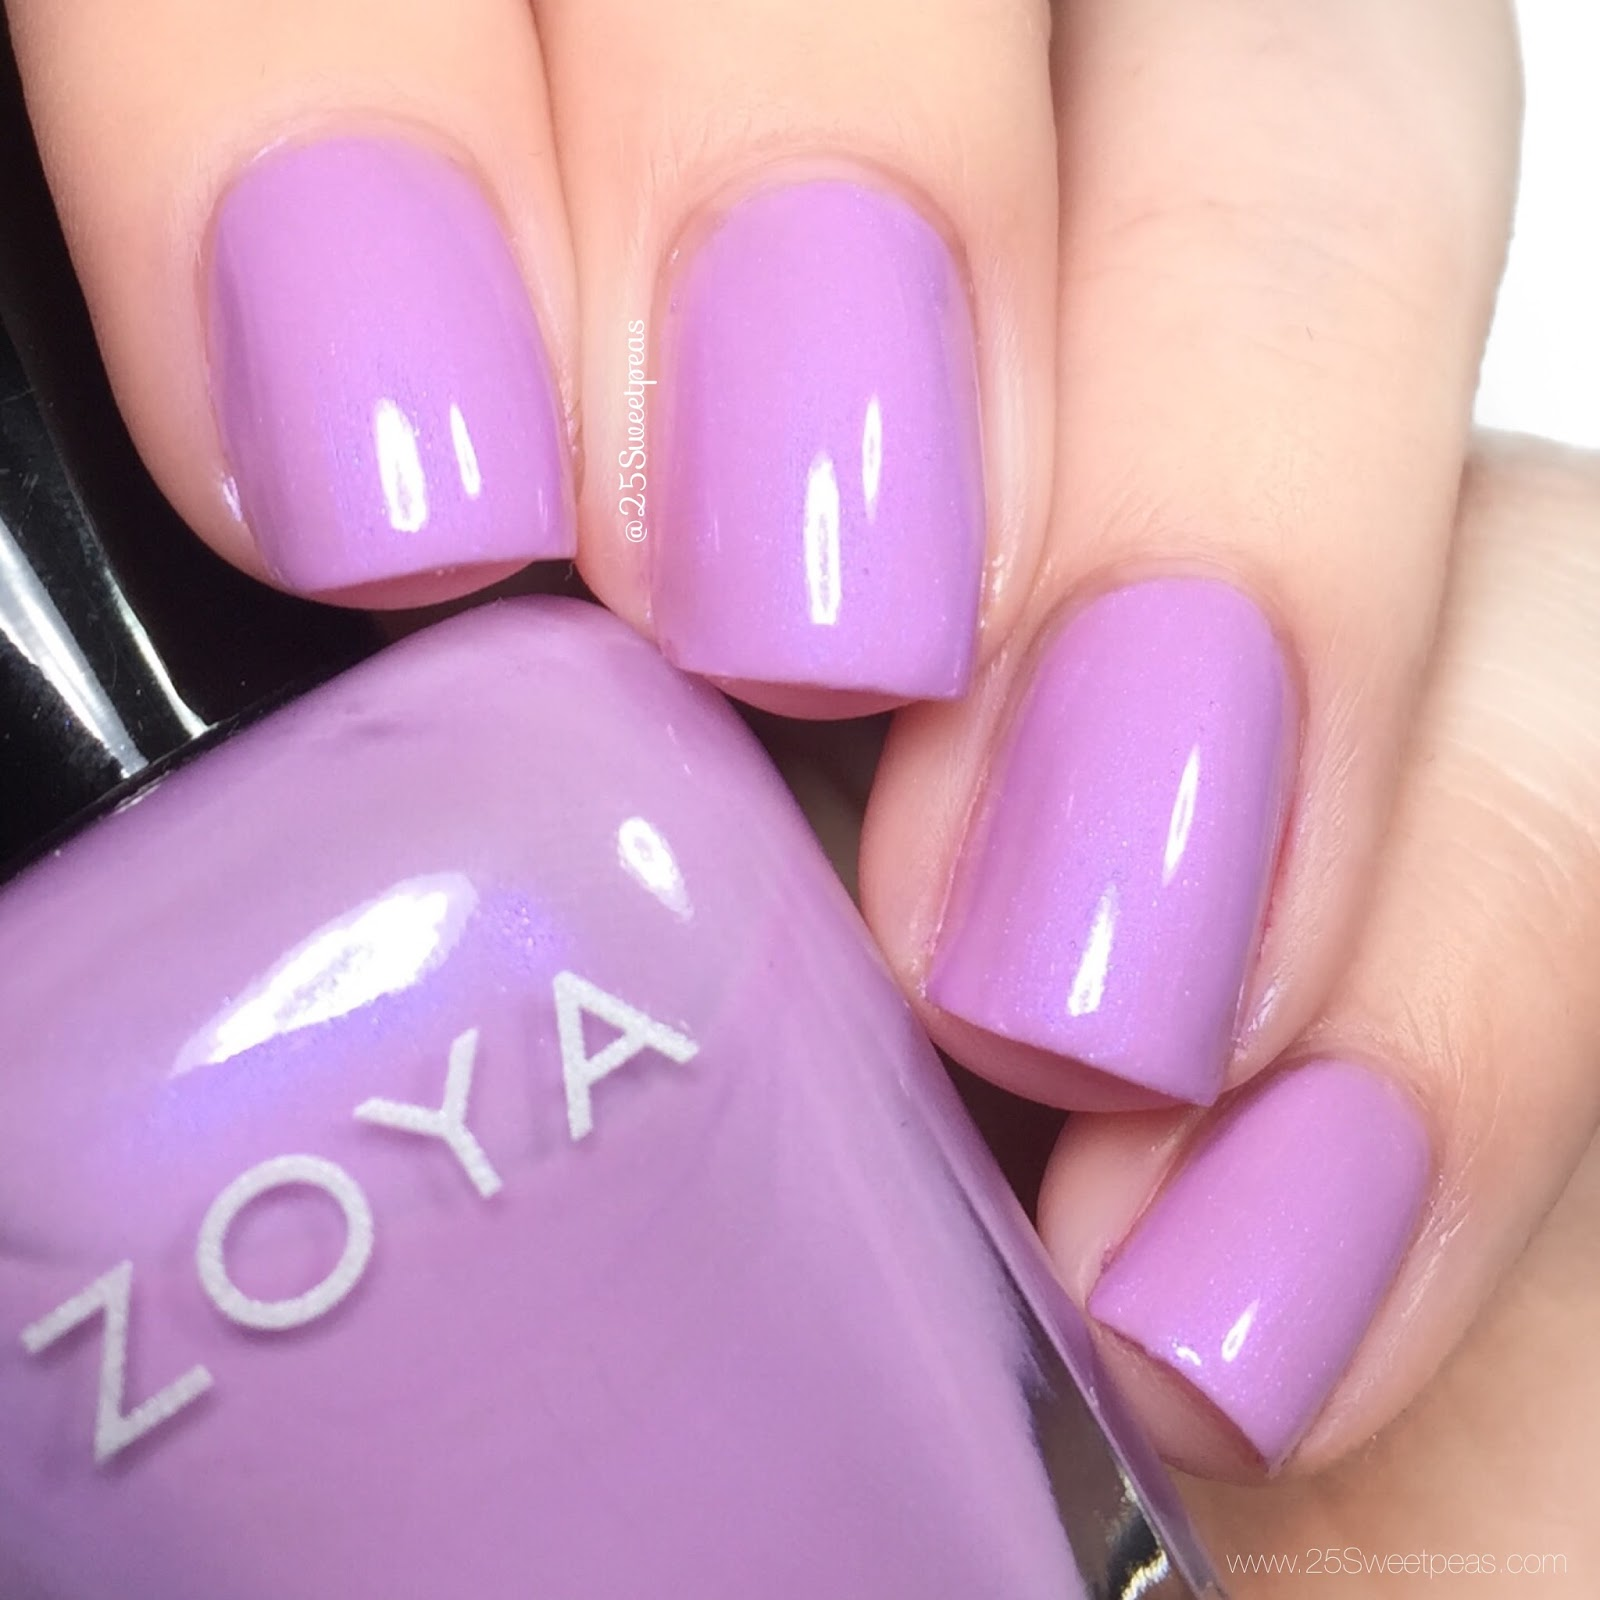 Zoya thrive spring 2018 25 sweetpeas this polish color wise is lovely its the only one that i has formula issues with though it was an issue i think of running down the stem of the brush too reheart Gallery